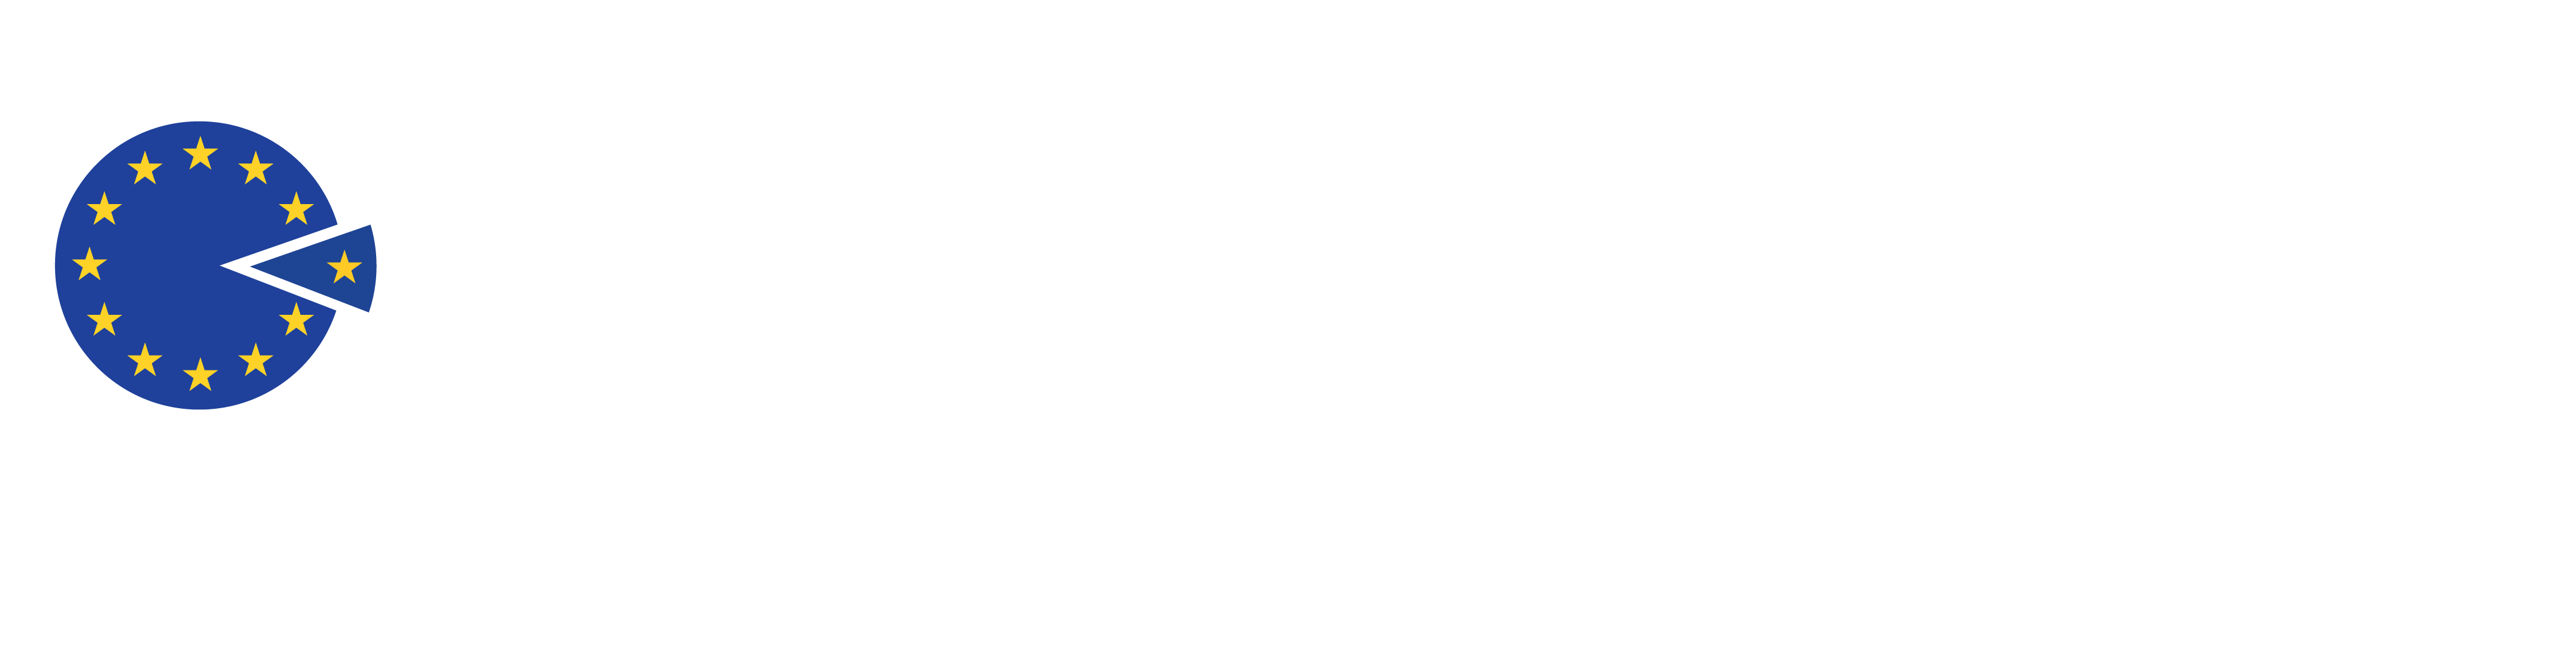 Brexit Next - Legal implications